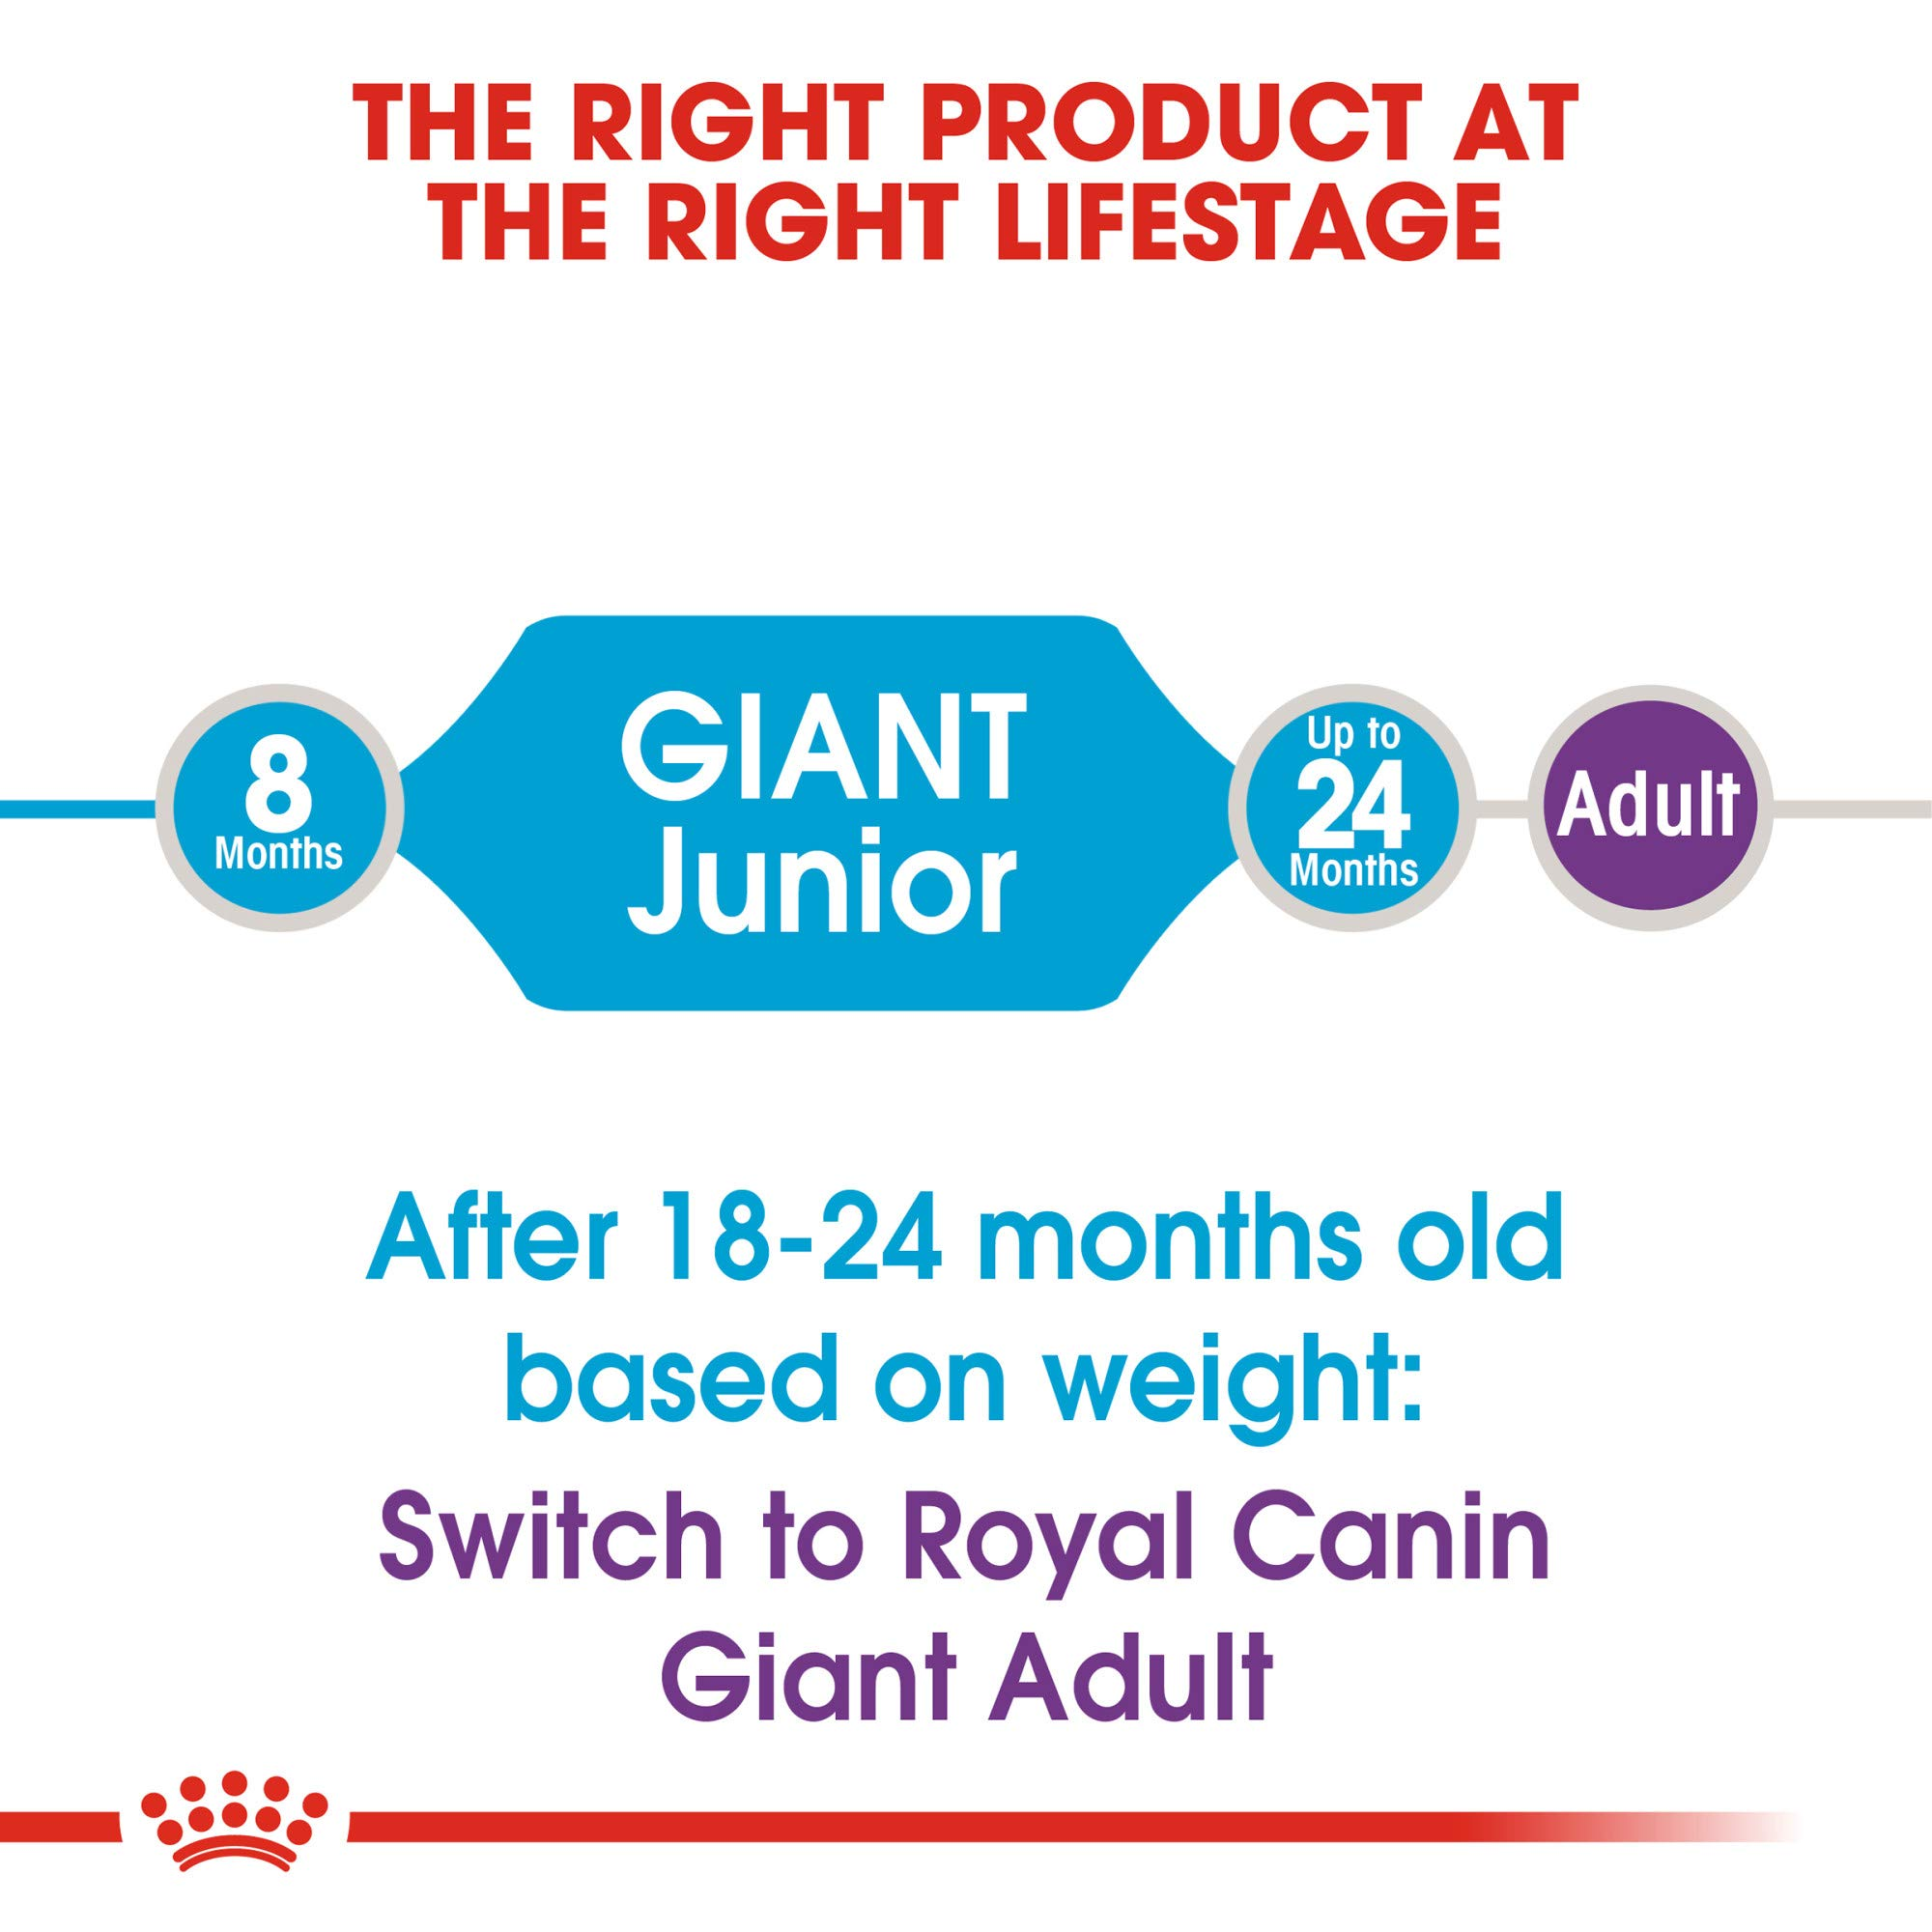 Royal Canin Giant Junior Dry Puppy Food, 30 Lb. by Royal Canin (Image #3)